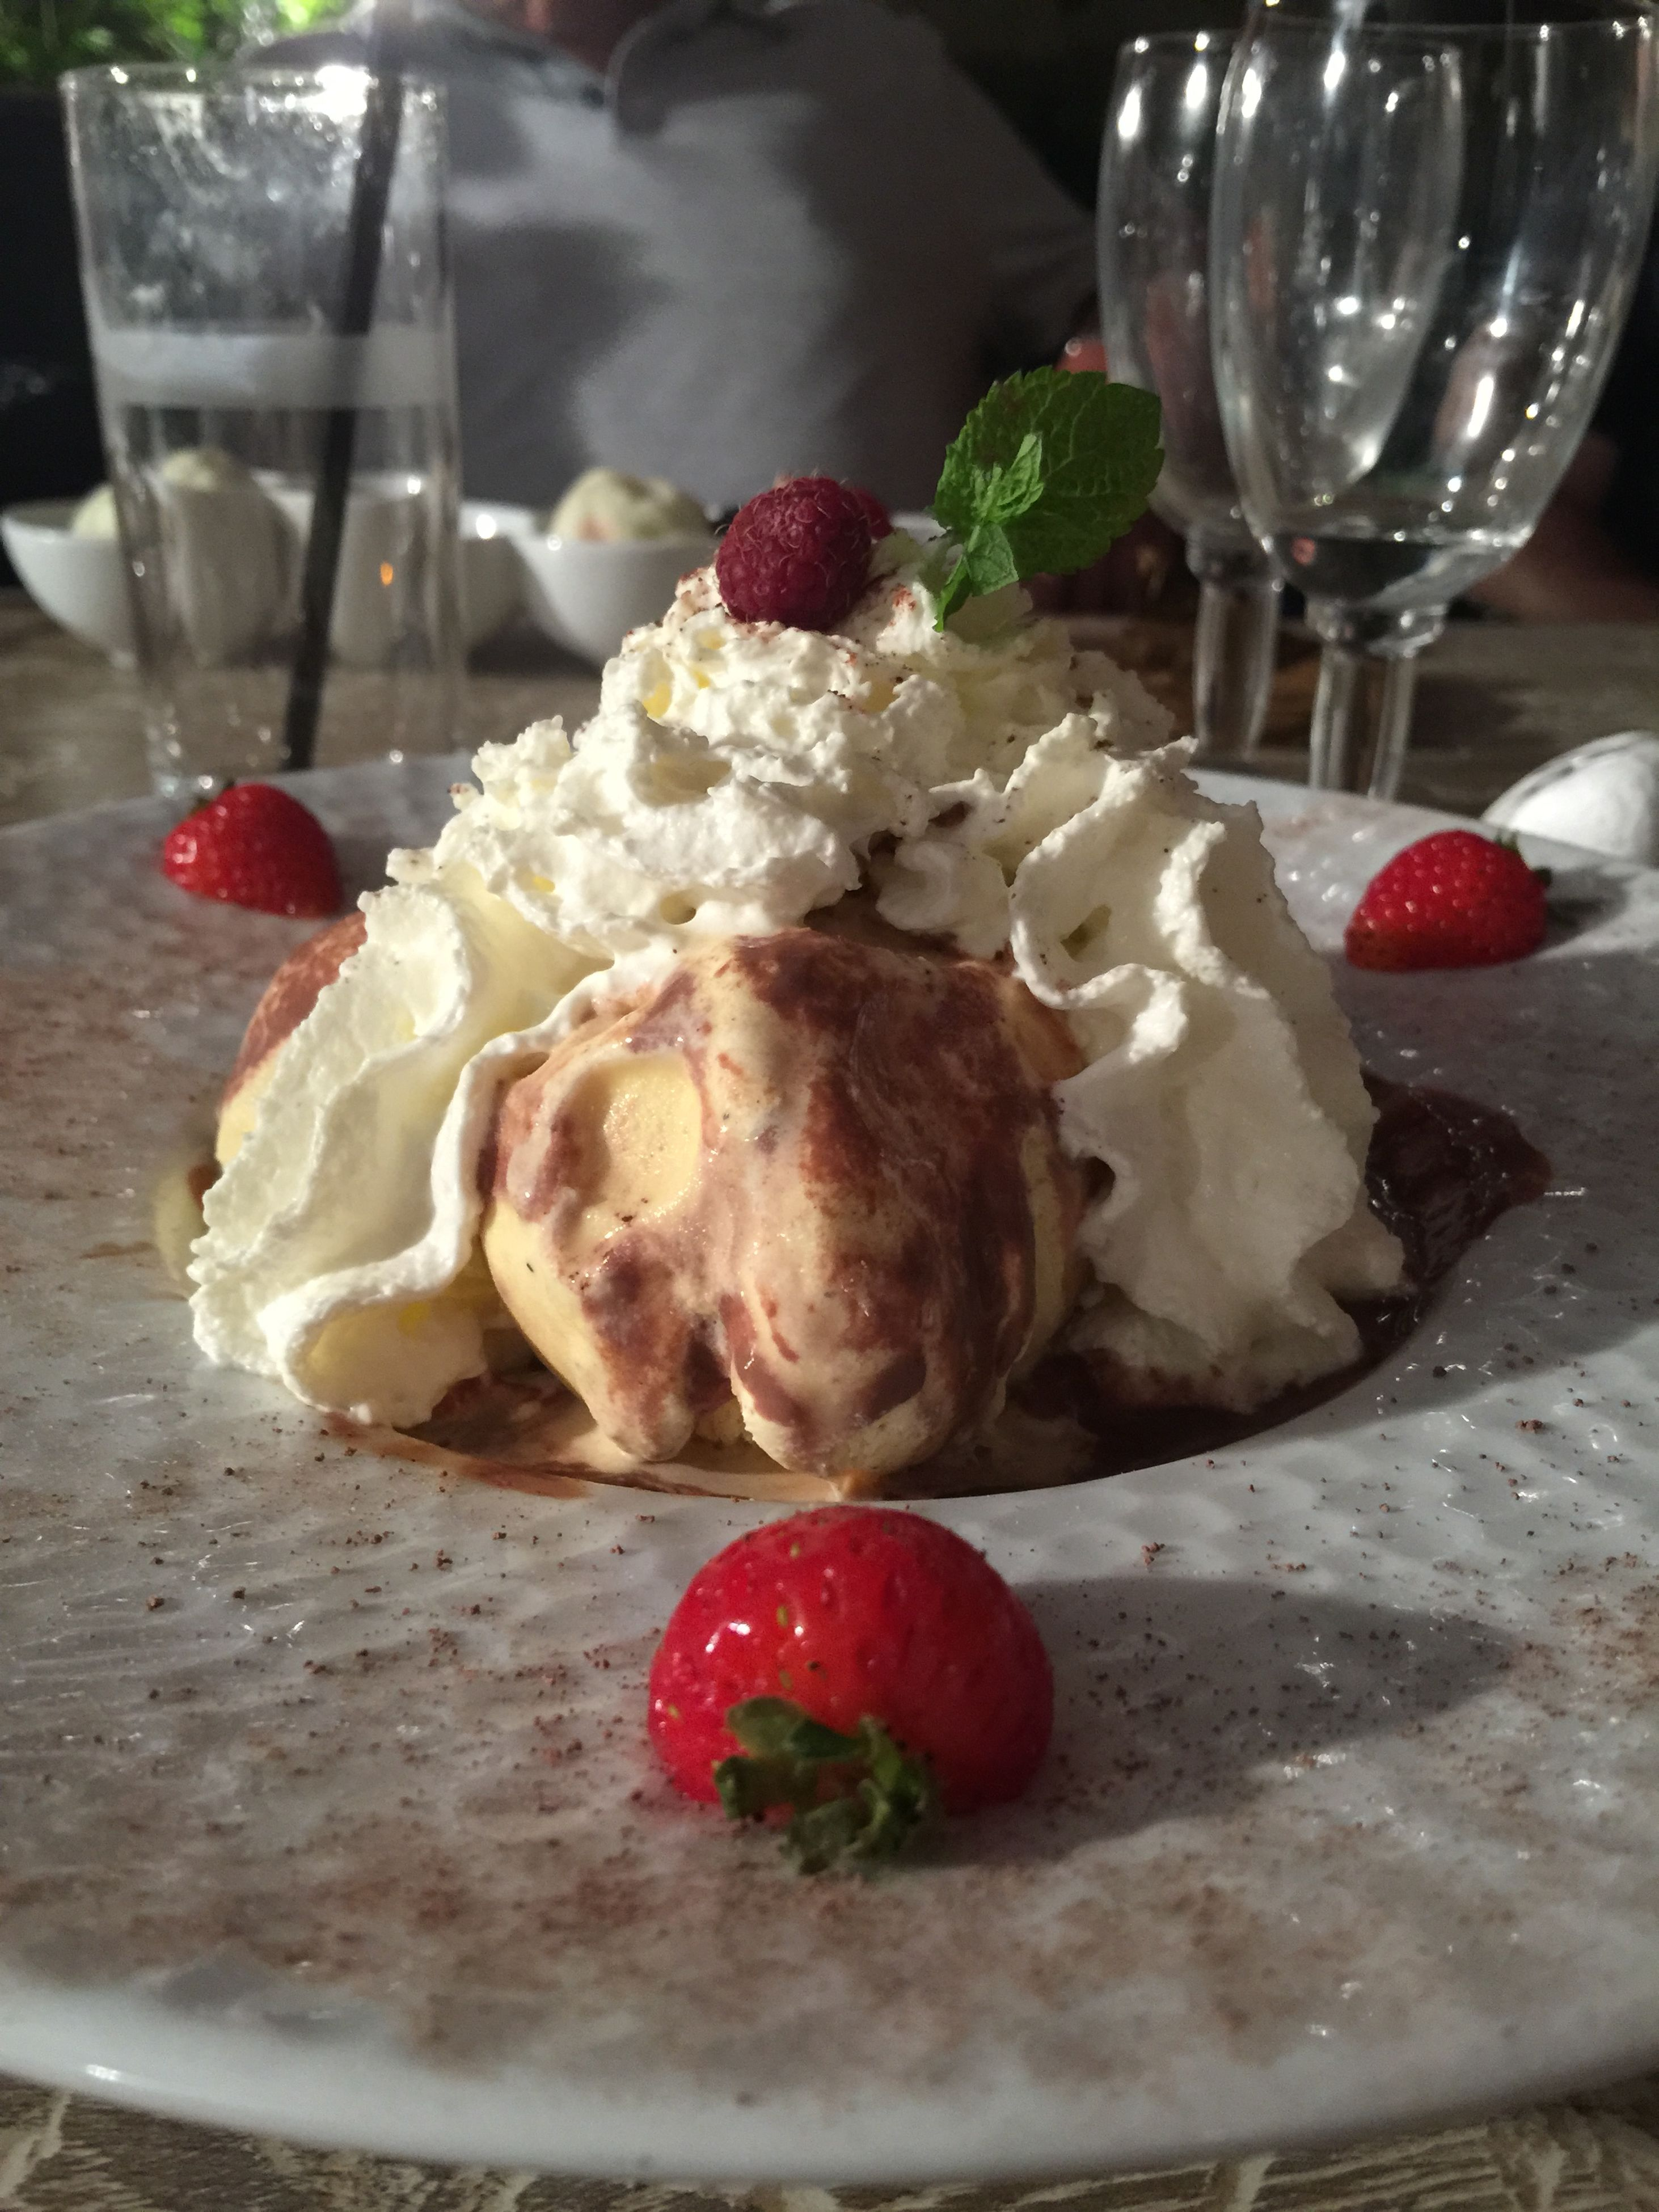 food and drink, food, freshness, ready-to-eat, sweet food, indoors, dessert, indulgence, plate, fruit, still life, close-up, strawberry, unhealthy eating, temptation, cake, table, serving size, ice cream